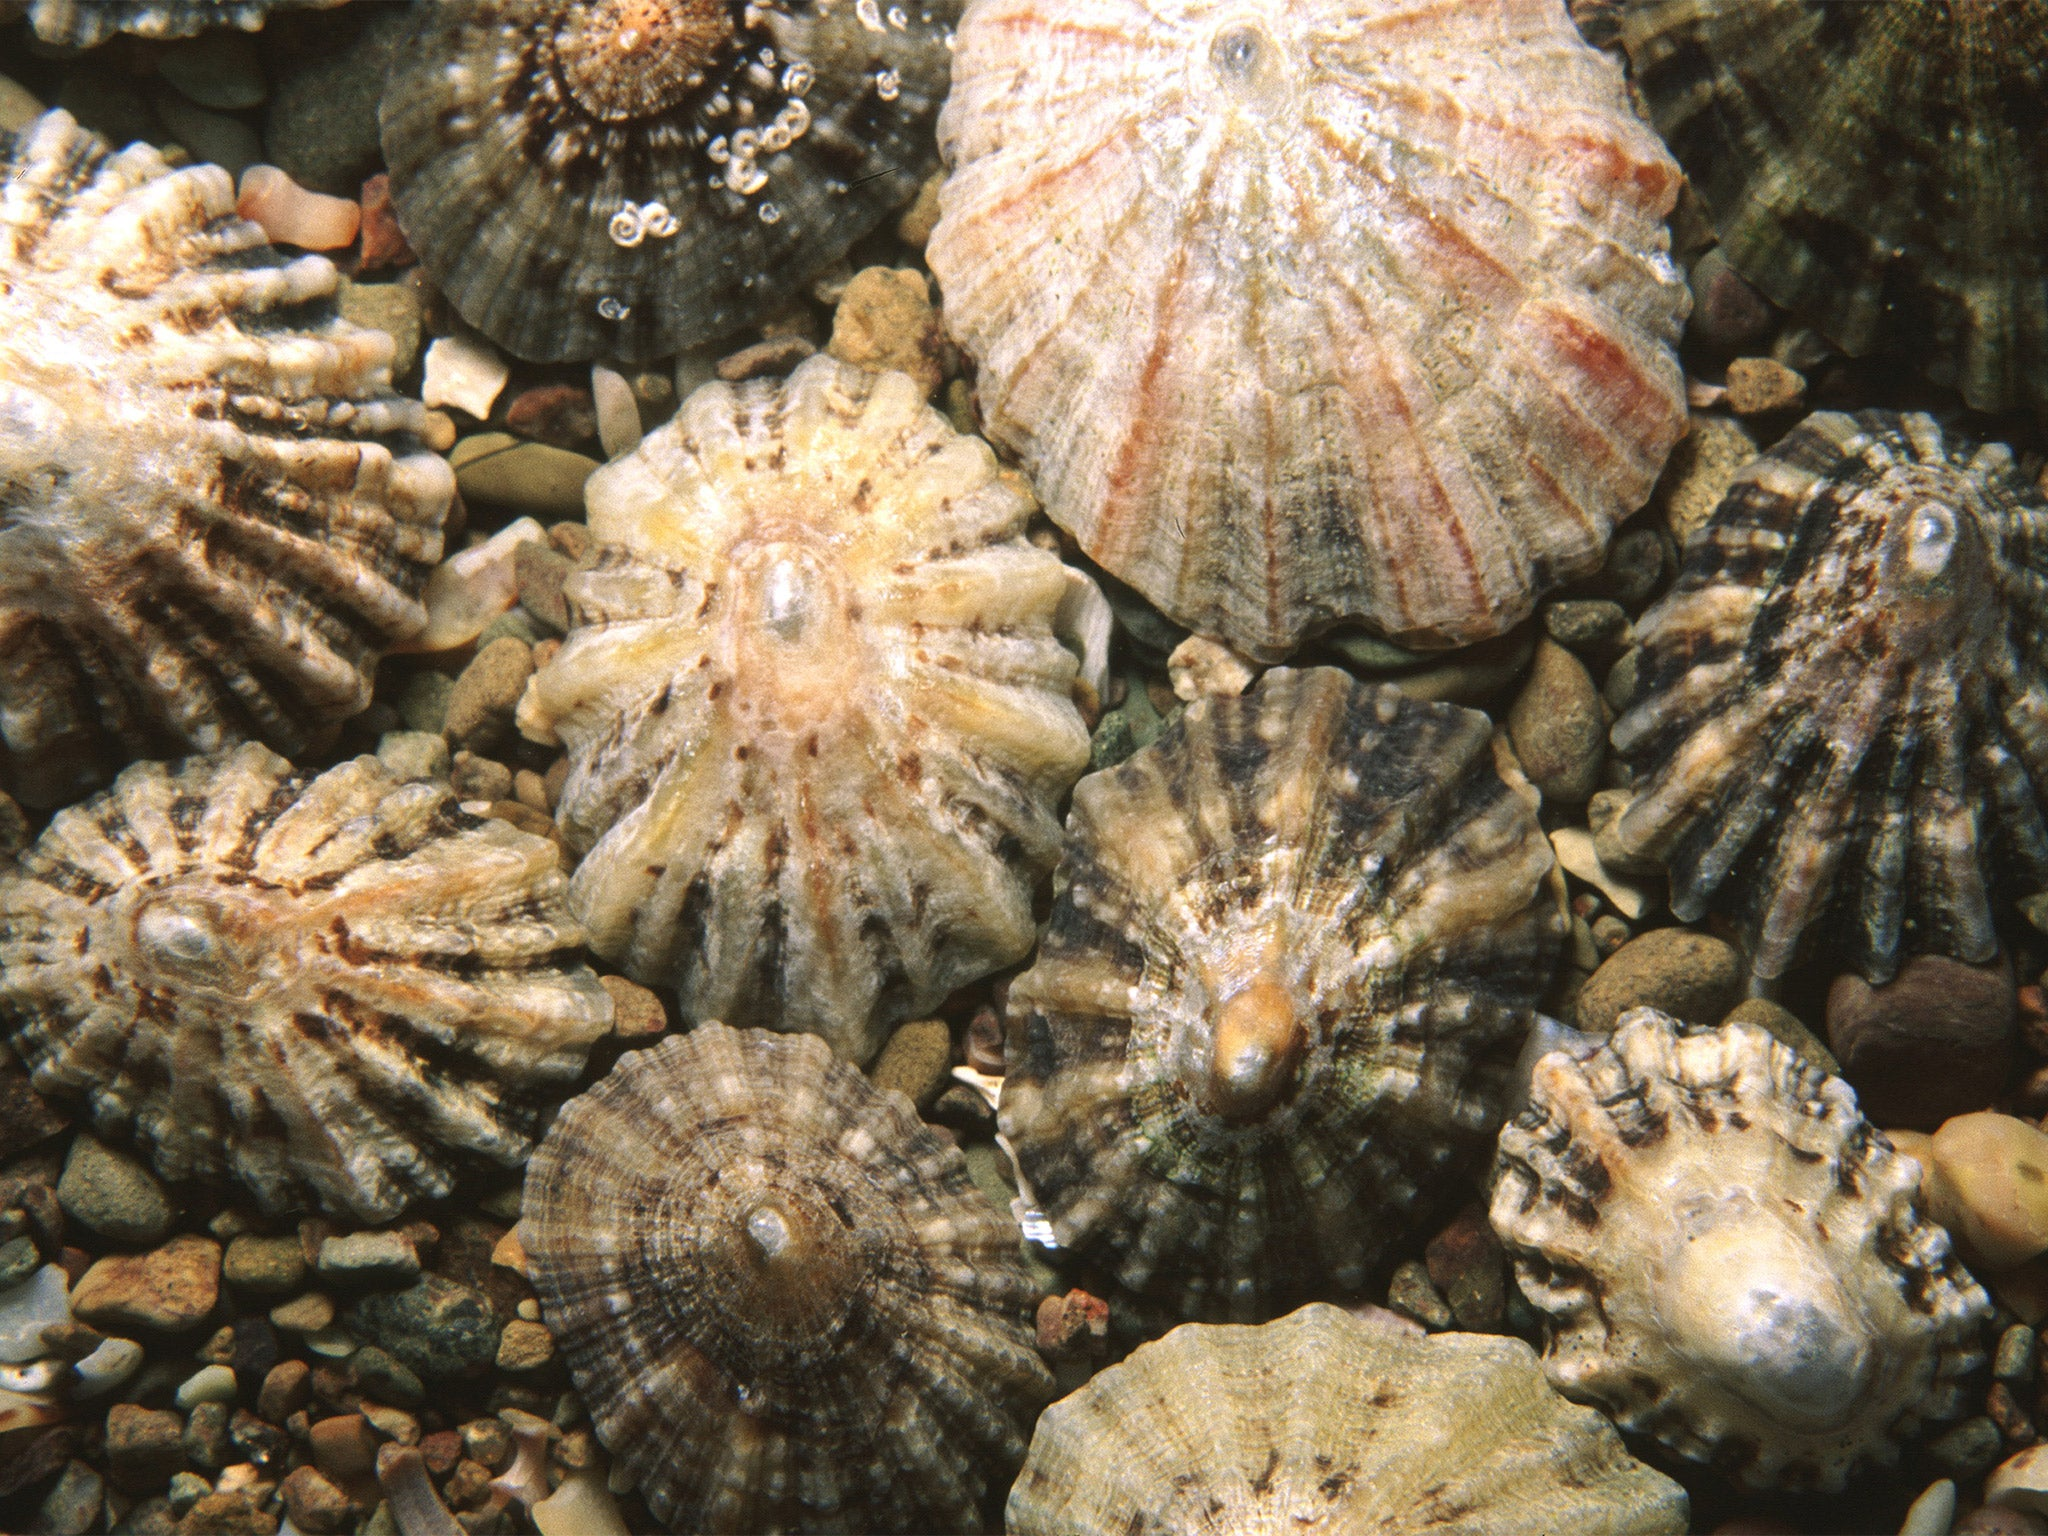 Limpet teeth are the strongest biological material known to man